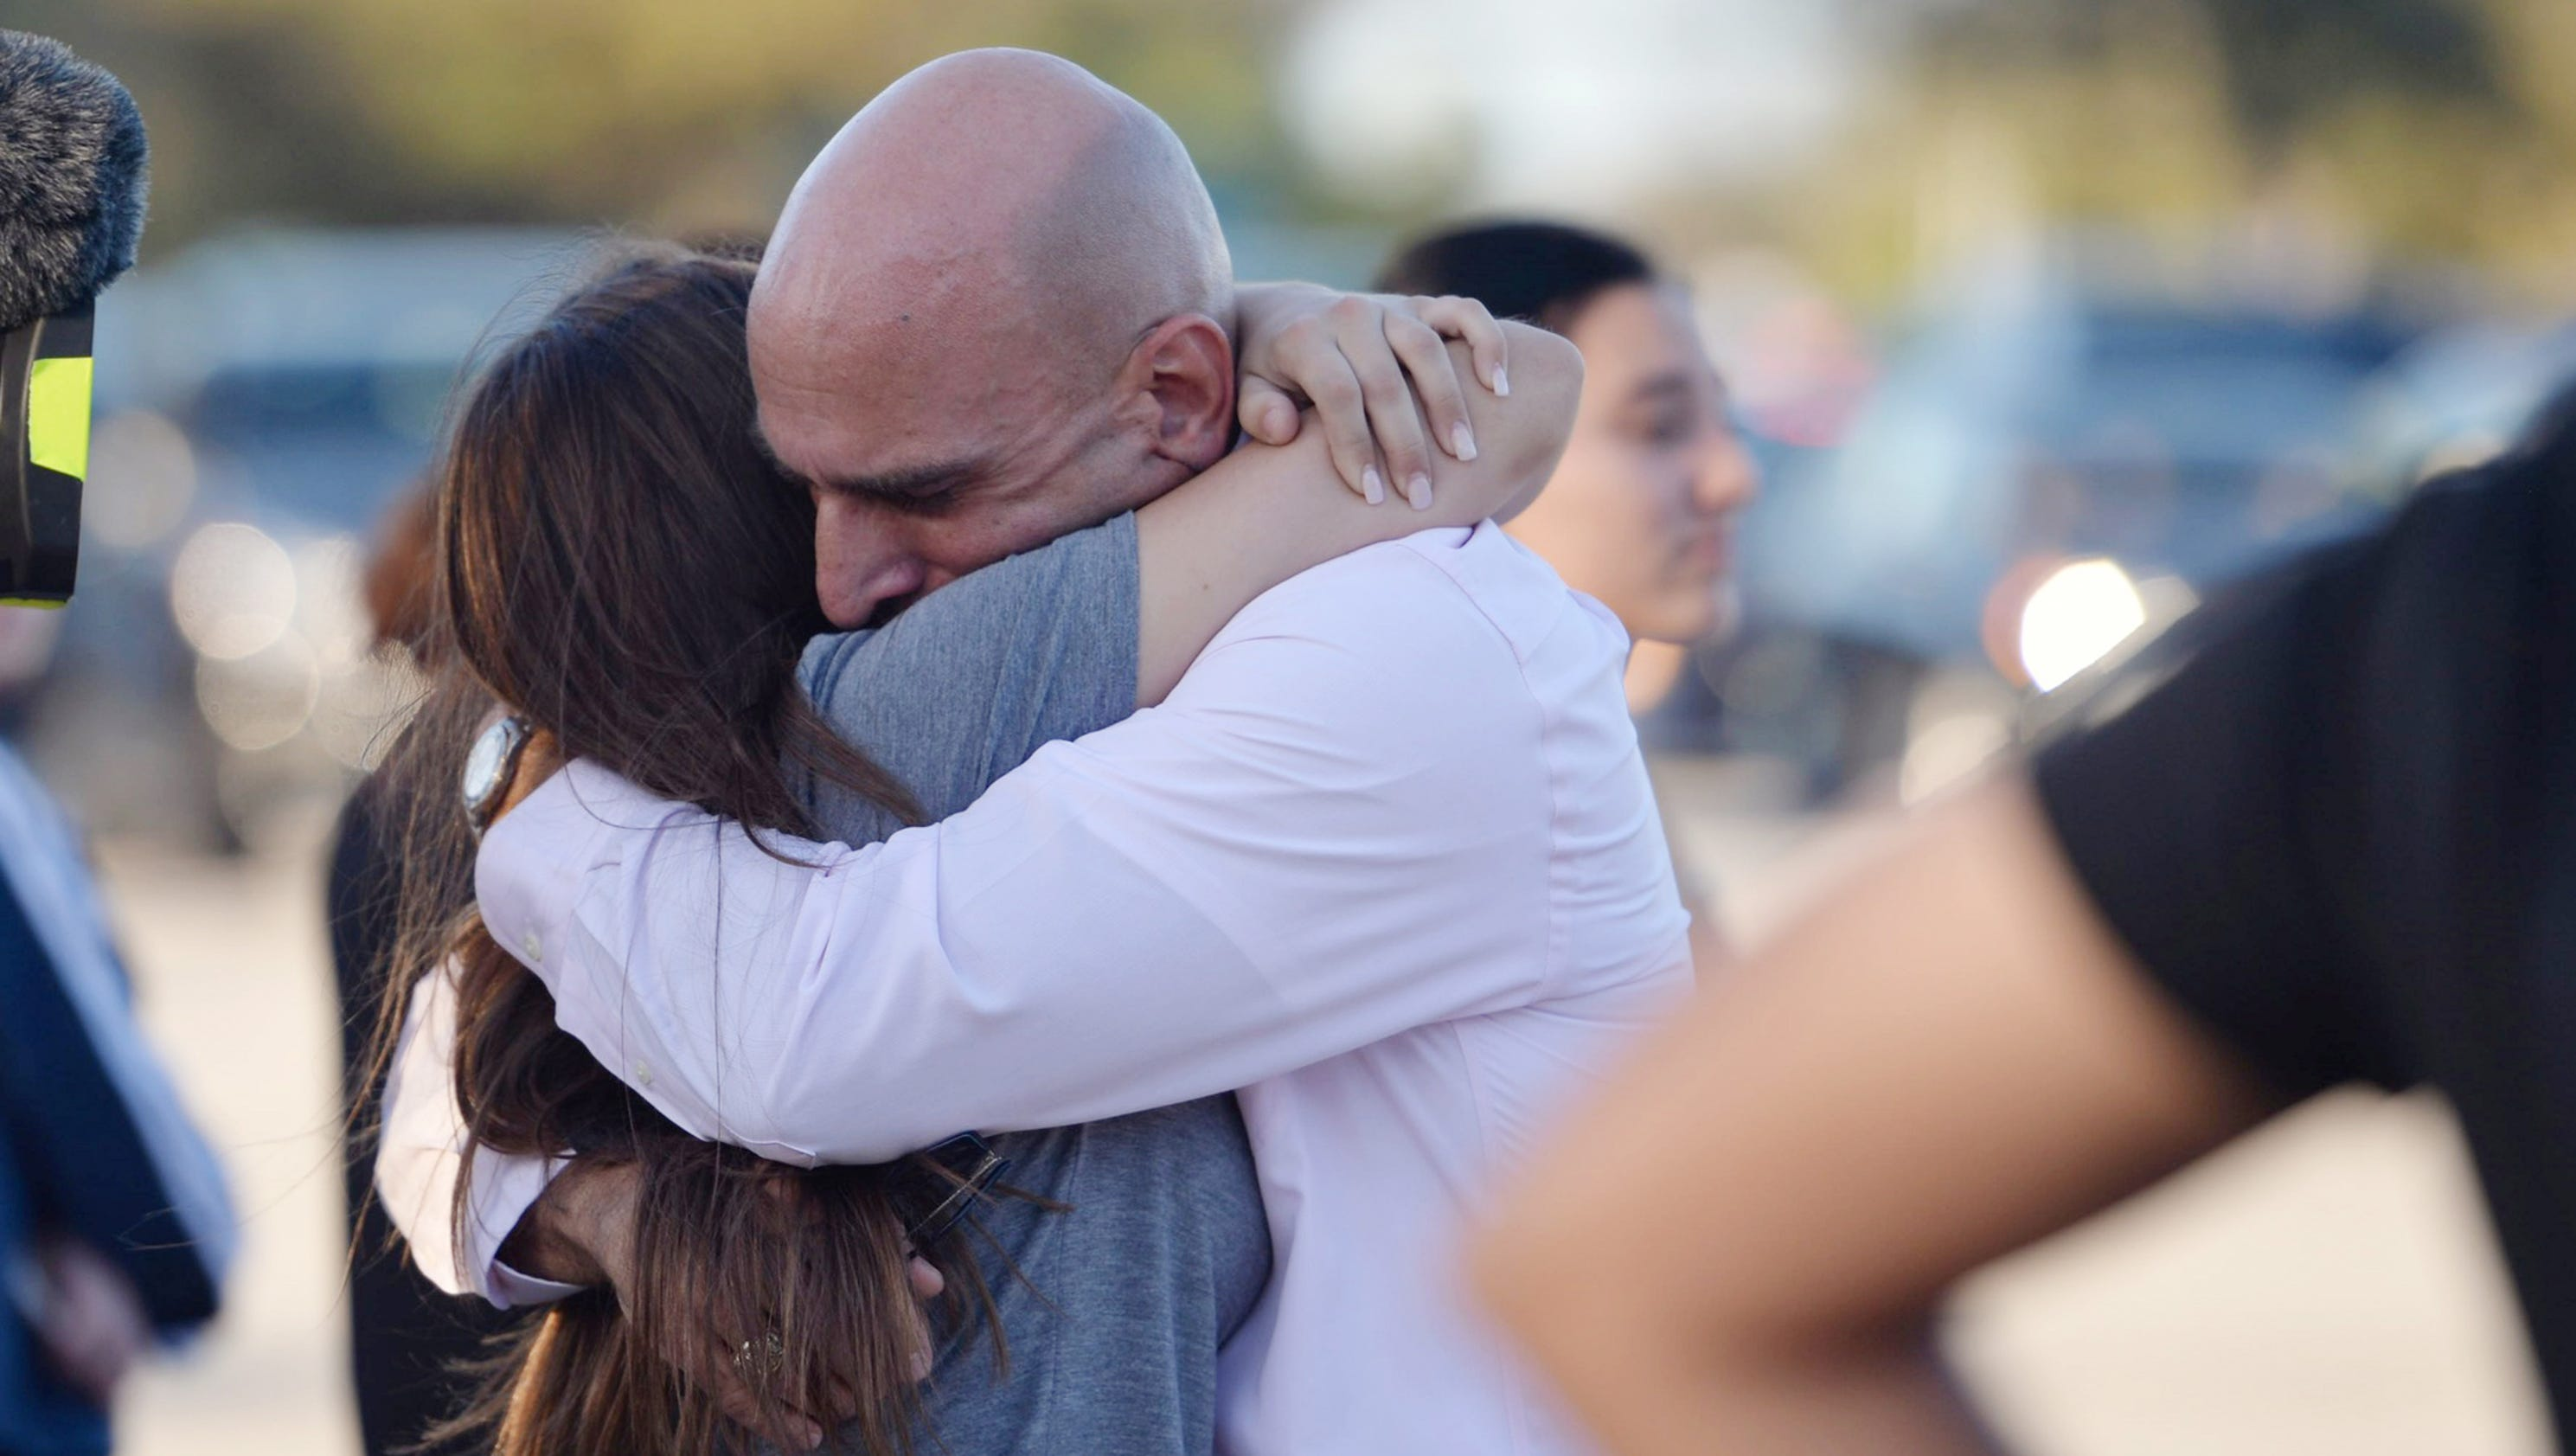 Florida school shooting: We suffered loss; let's love